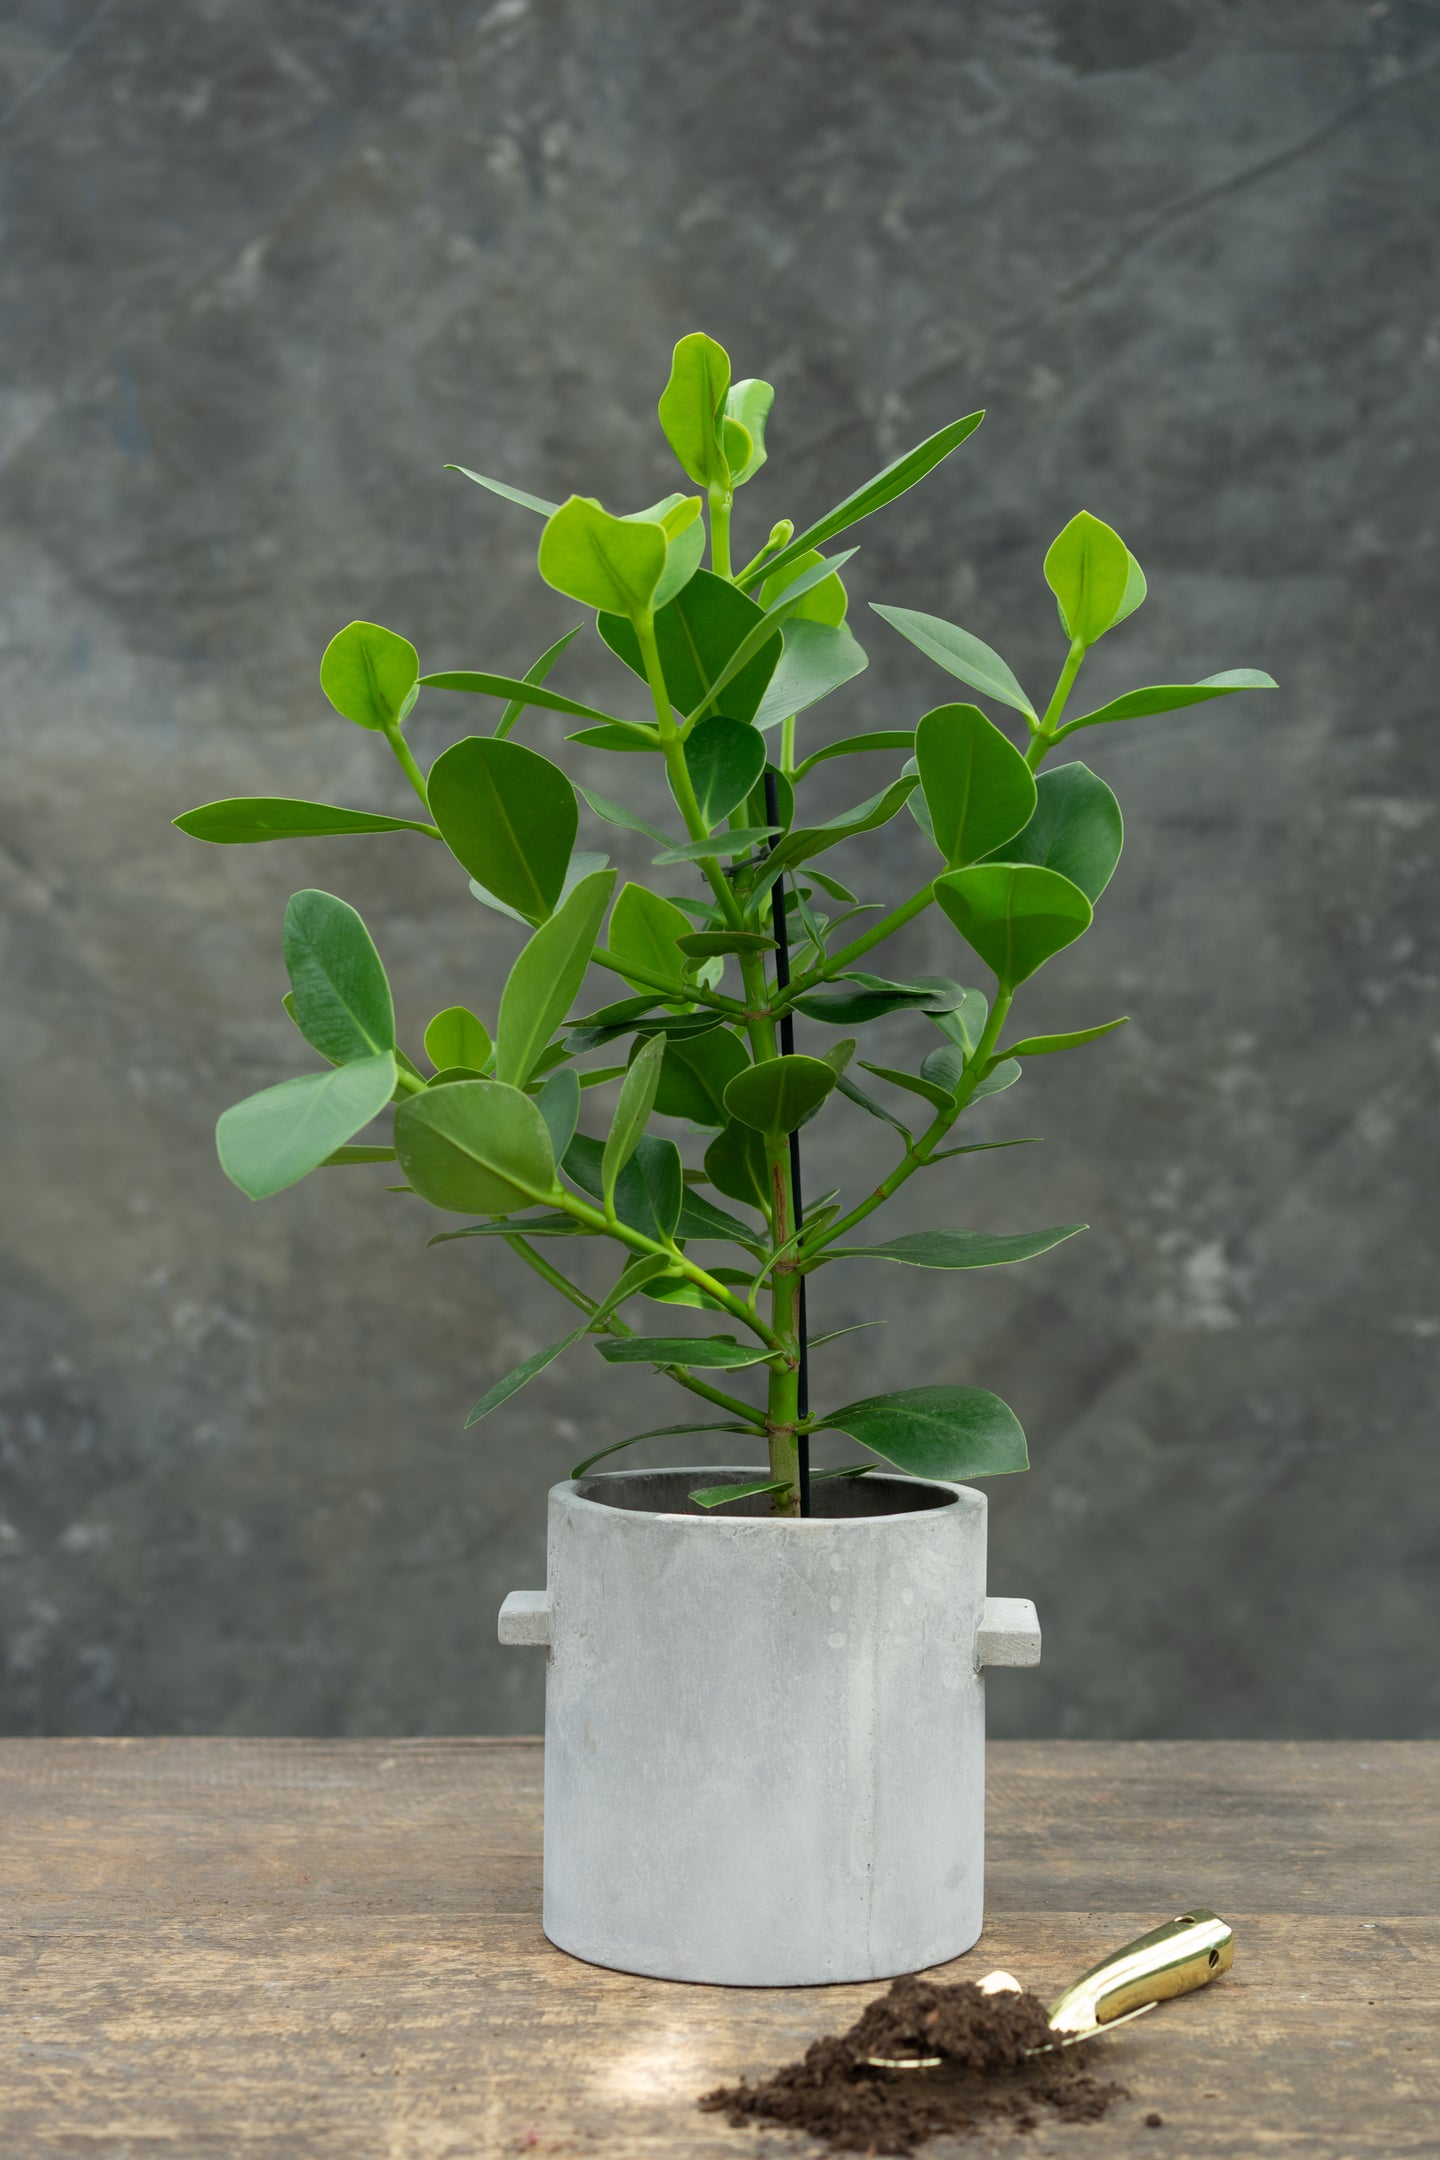 Autograph Plant - sign up for a new lease on life!